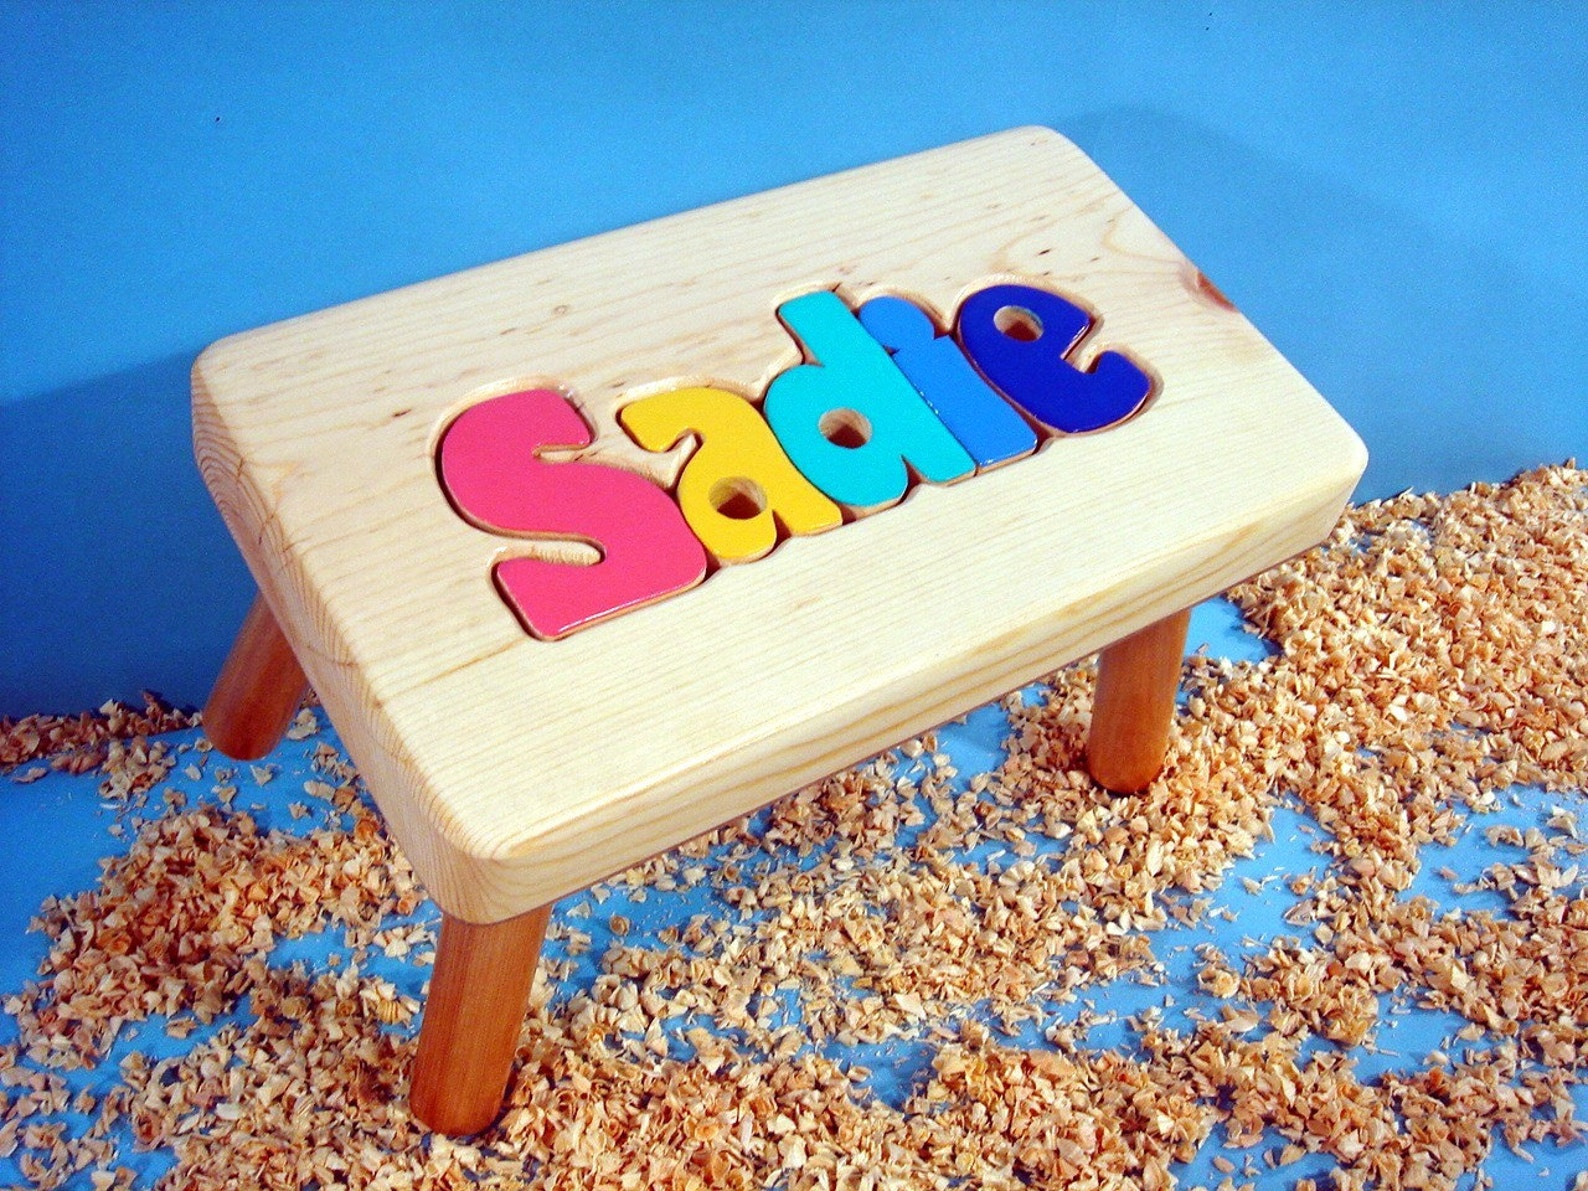 Shop Personalized Wooden Puzzle Step Stool | Etsy from Etsy on Openhaus